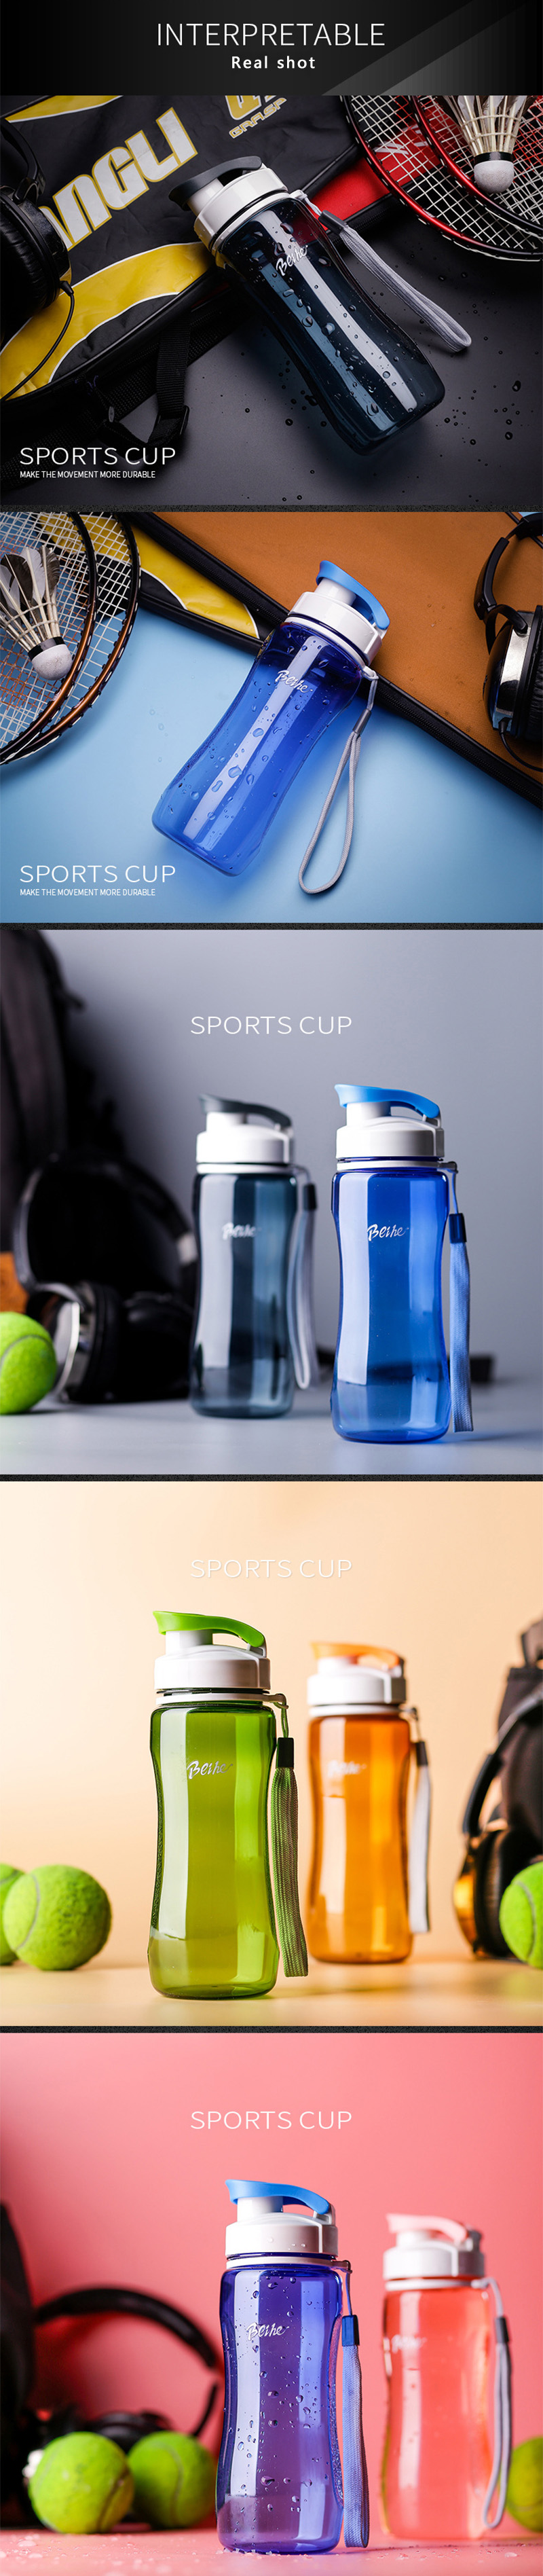 H240bc81936e54e619138d3b74cff528aK Kettle 720ML plastic water dispenser student outdoor sports school portable space cup leak-proof cup drinking water bottle